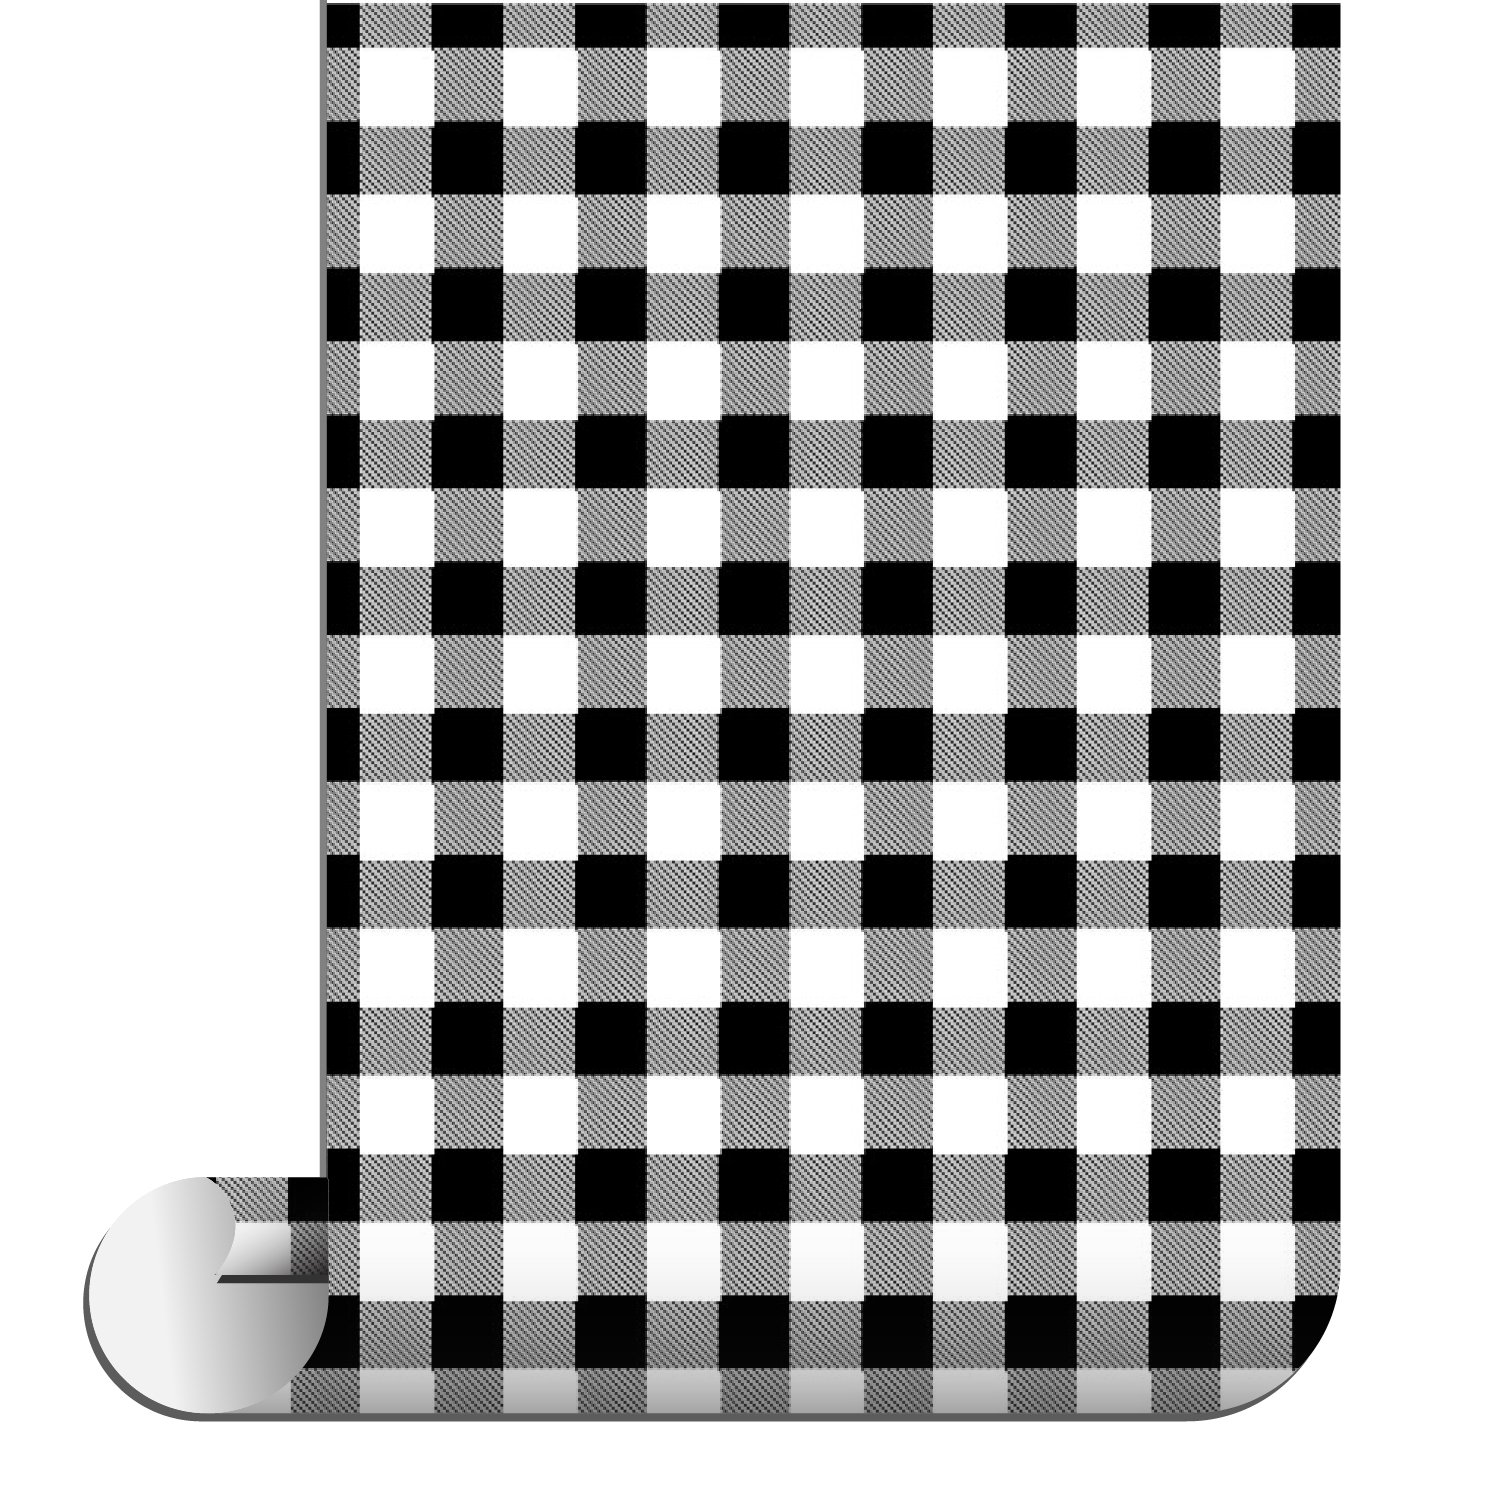 Sparkleberry Ink Siser Patterned HTV, 12'' by 4' Roll, White Buffalo Plaid by Sparkleberry Ink